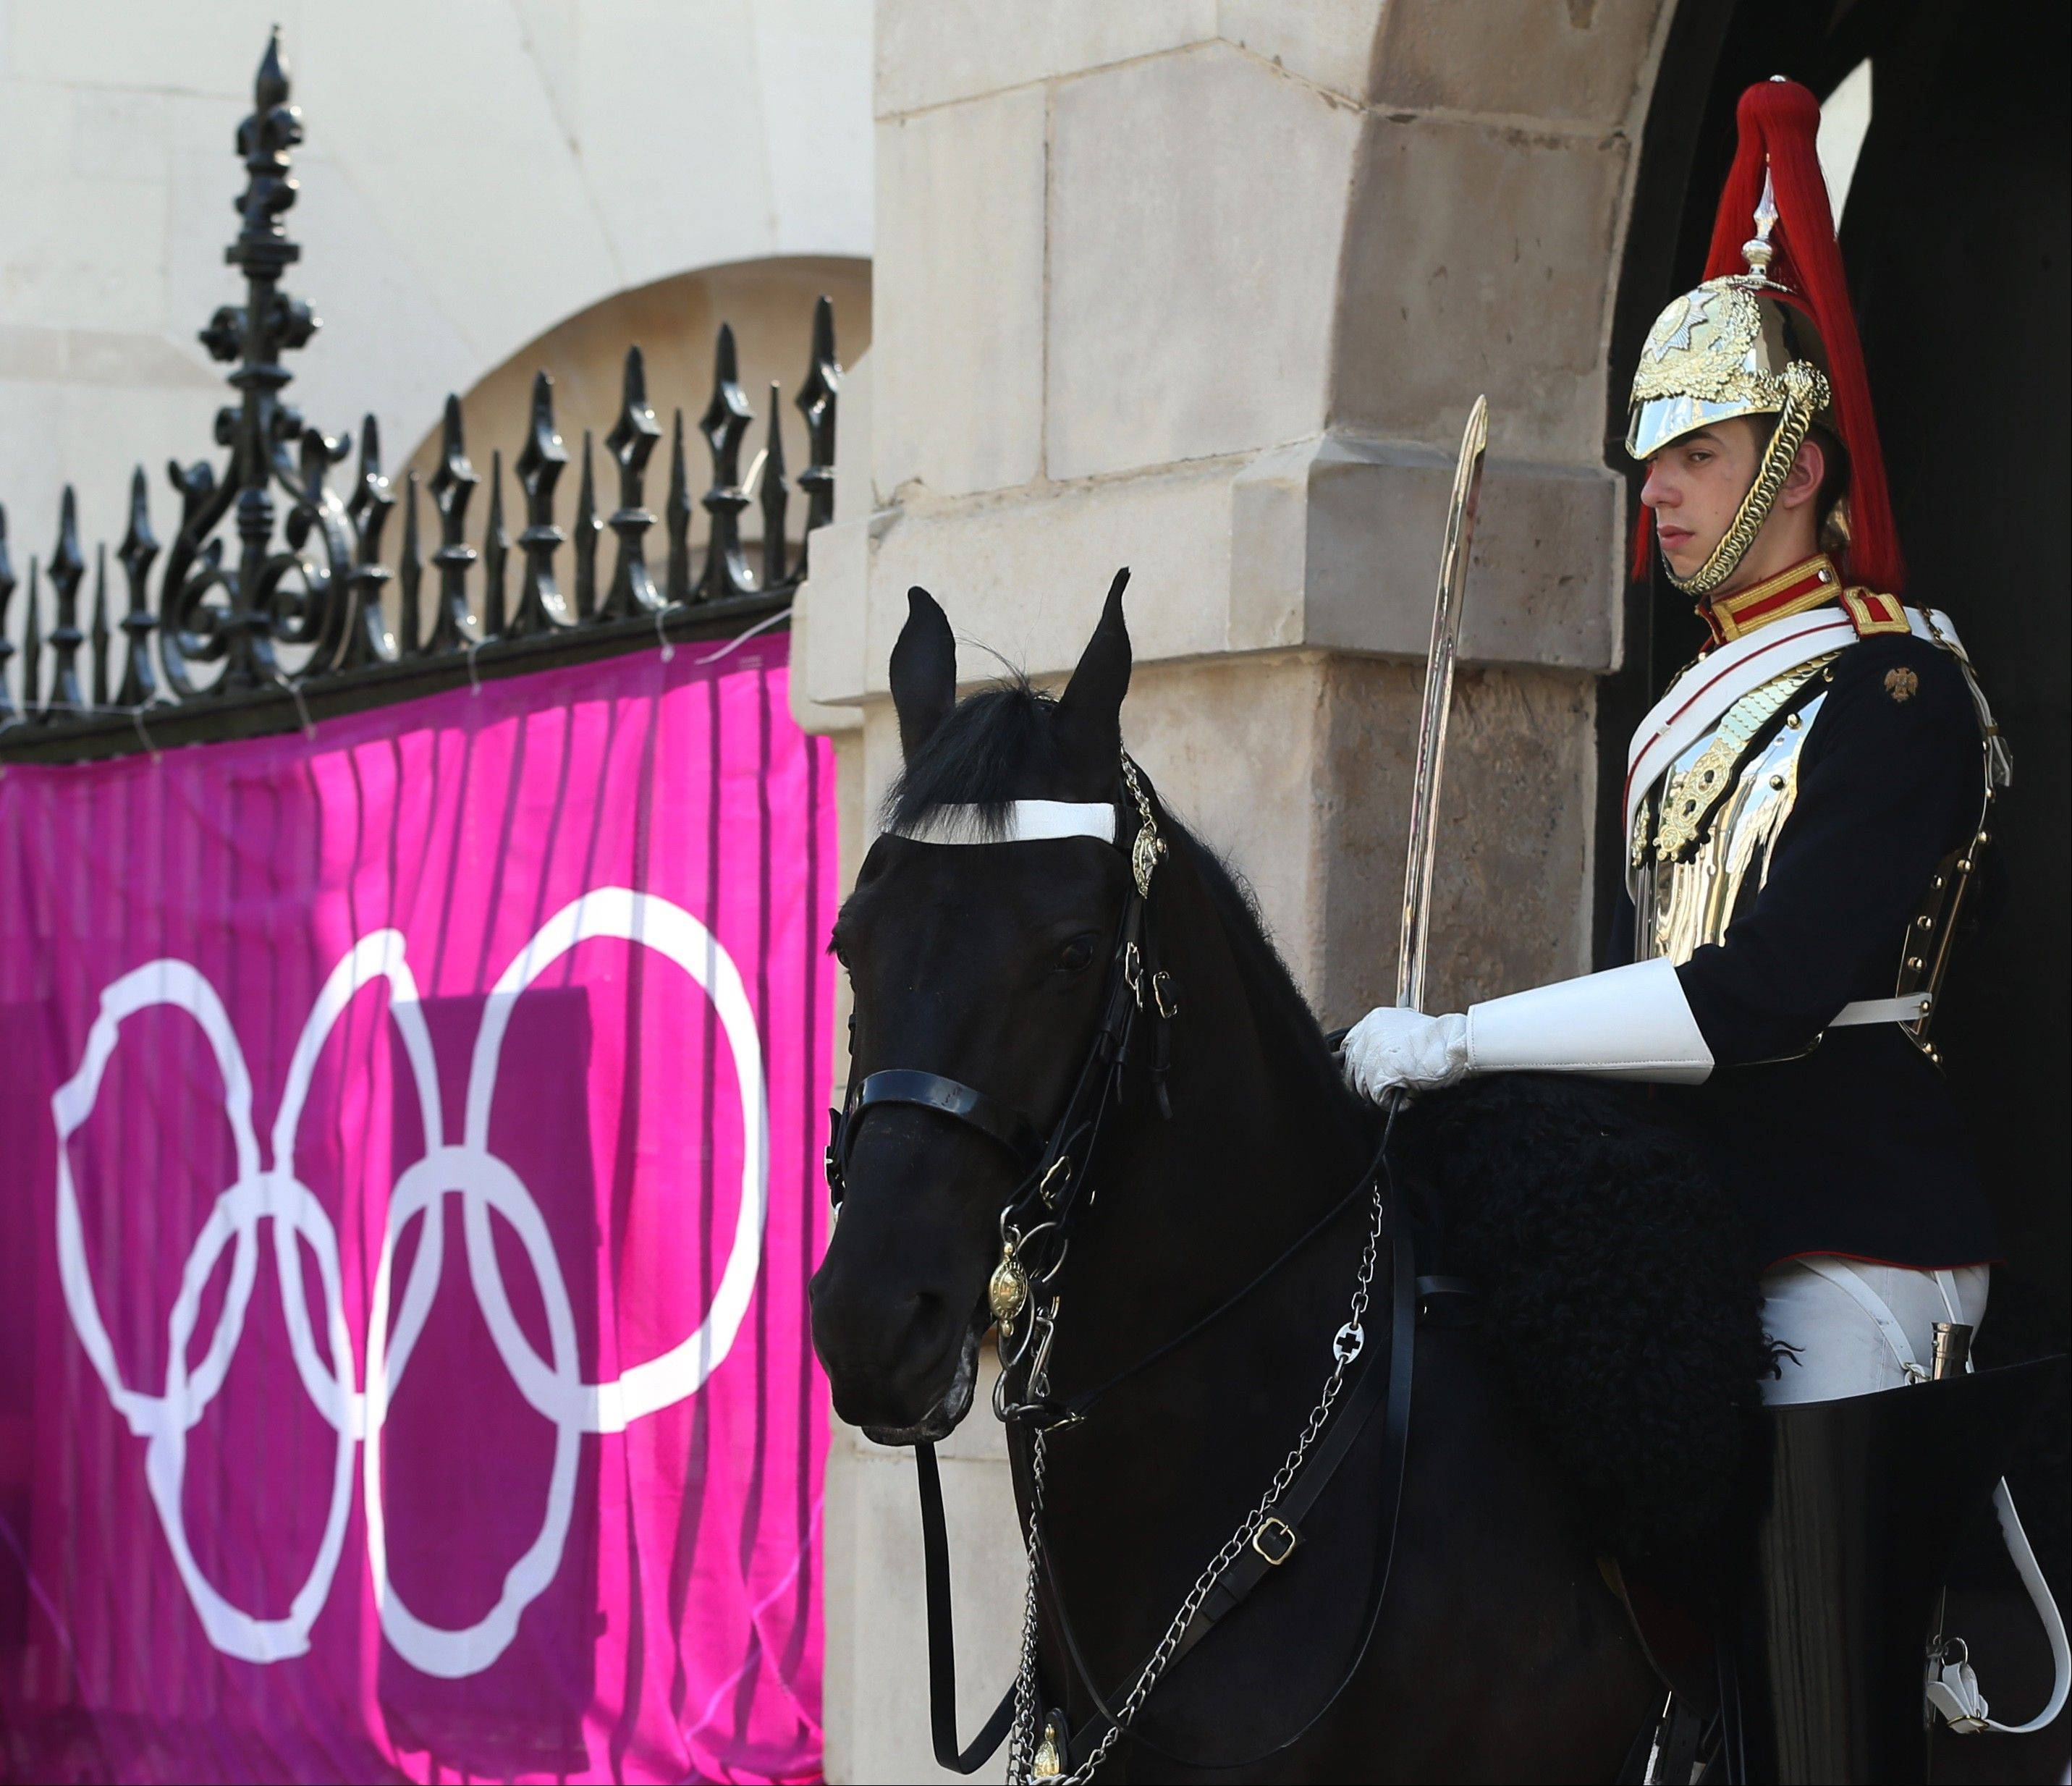 A member of the Horse Guards Parade stands watch outside the Admiralty House at the 2012 Summer Olympics on Wednesday in London. NBC said it has already sold $1 billion in ads for the Games.